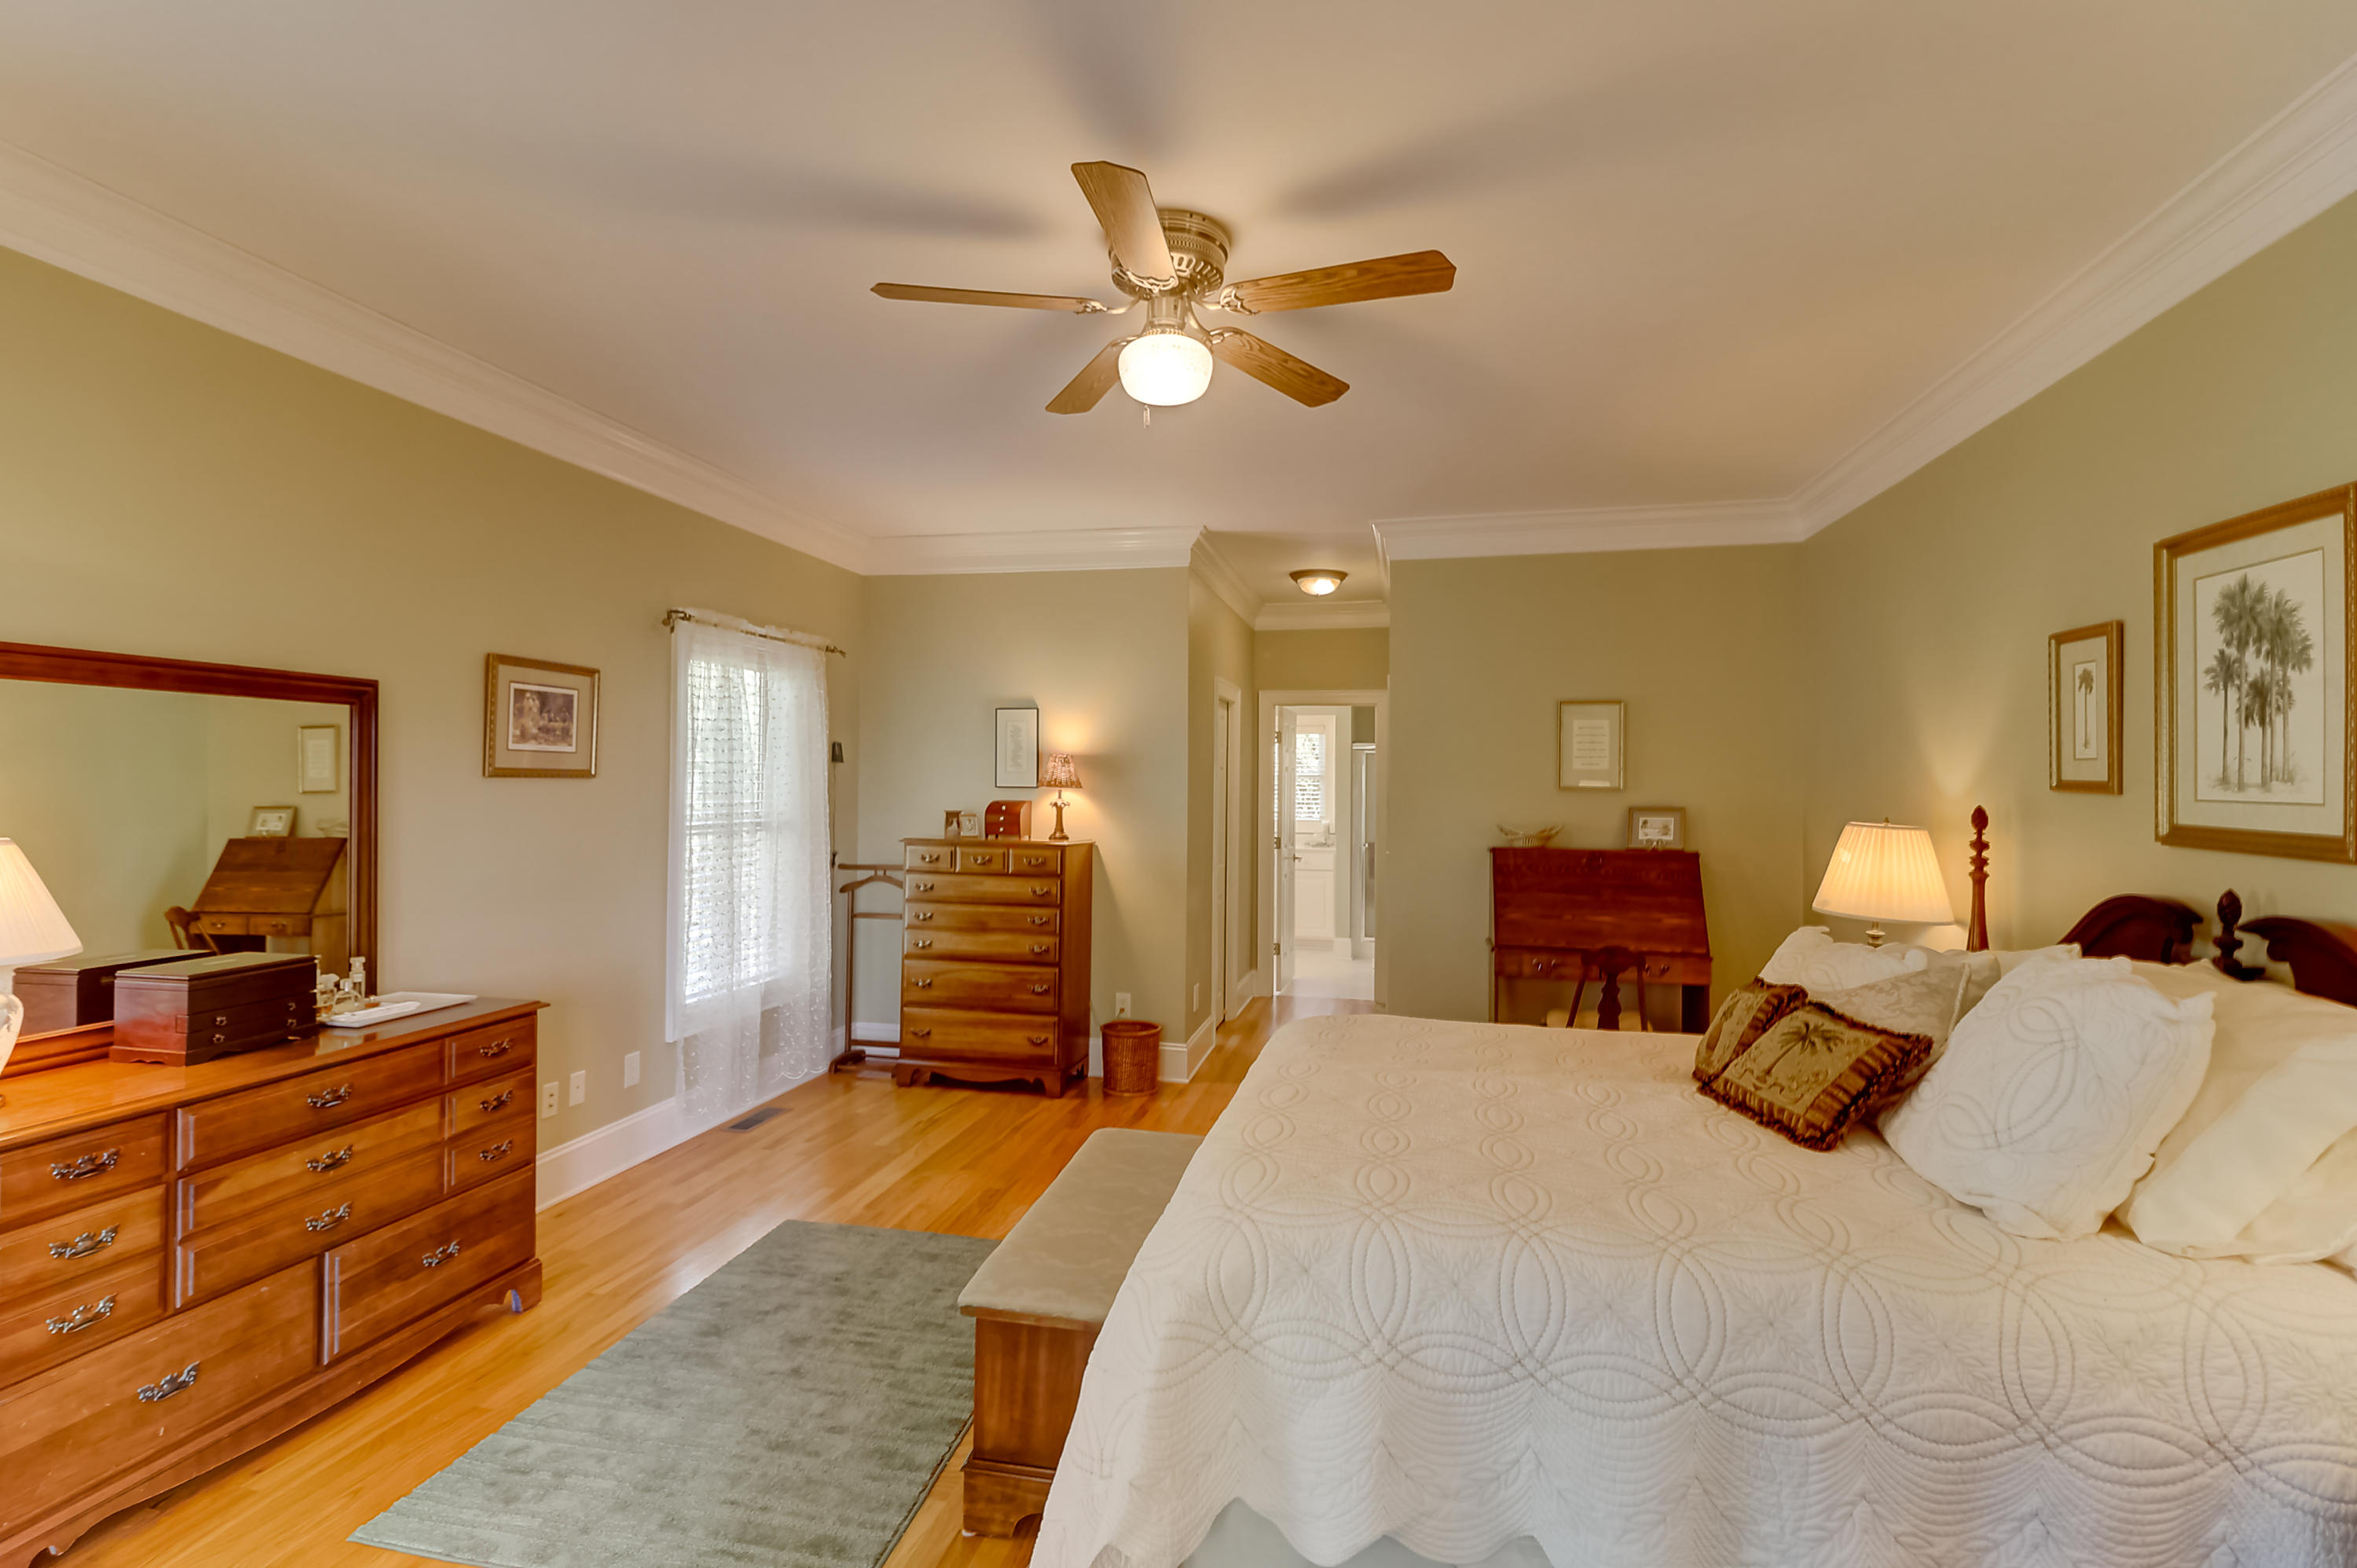 Stratton Place Homes For Sale - 1494 Stratton, Mount Pleasant, SC - 10